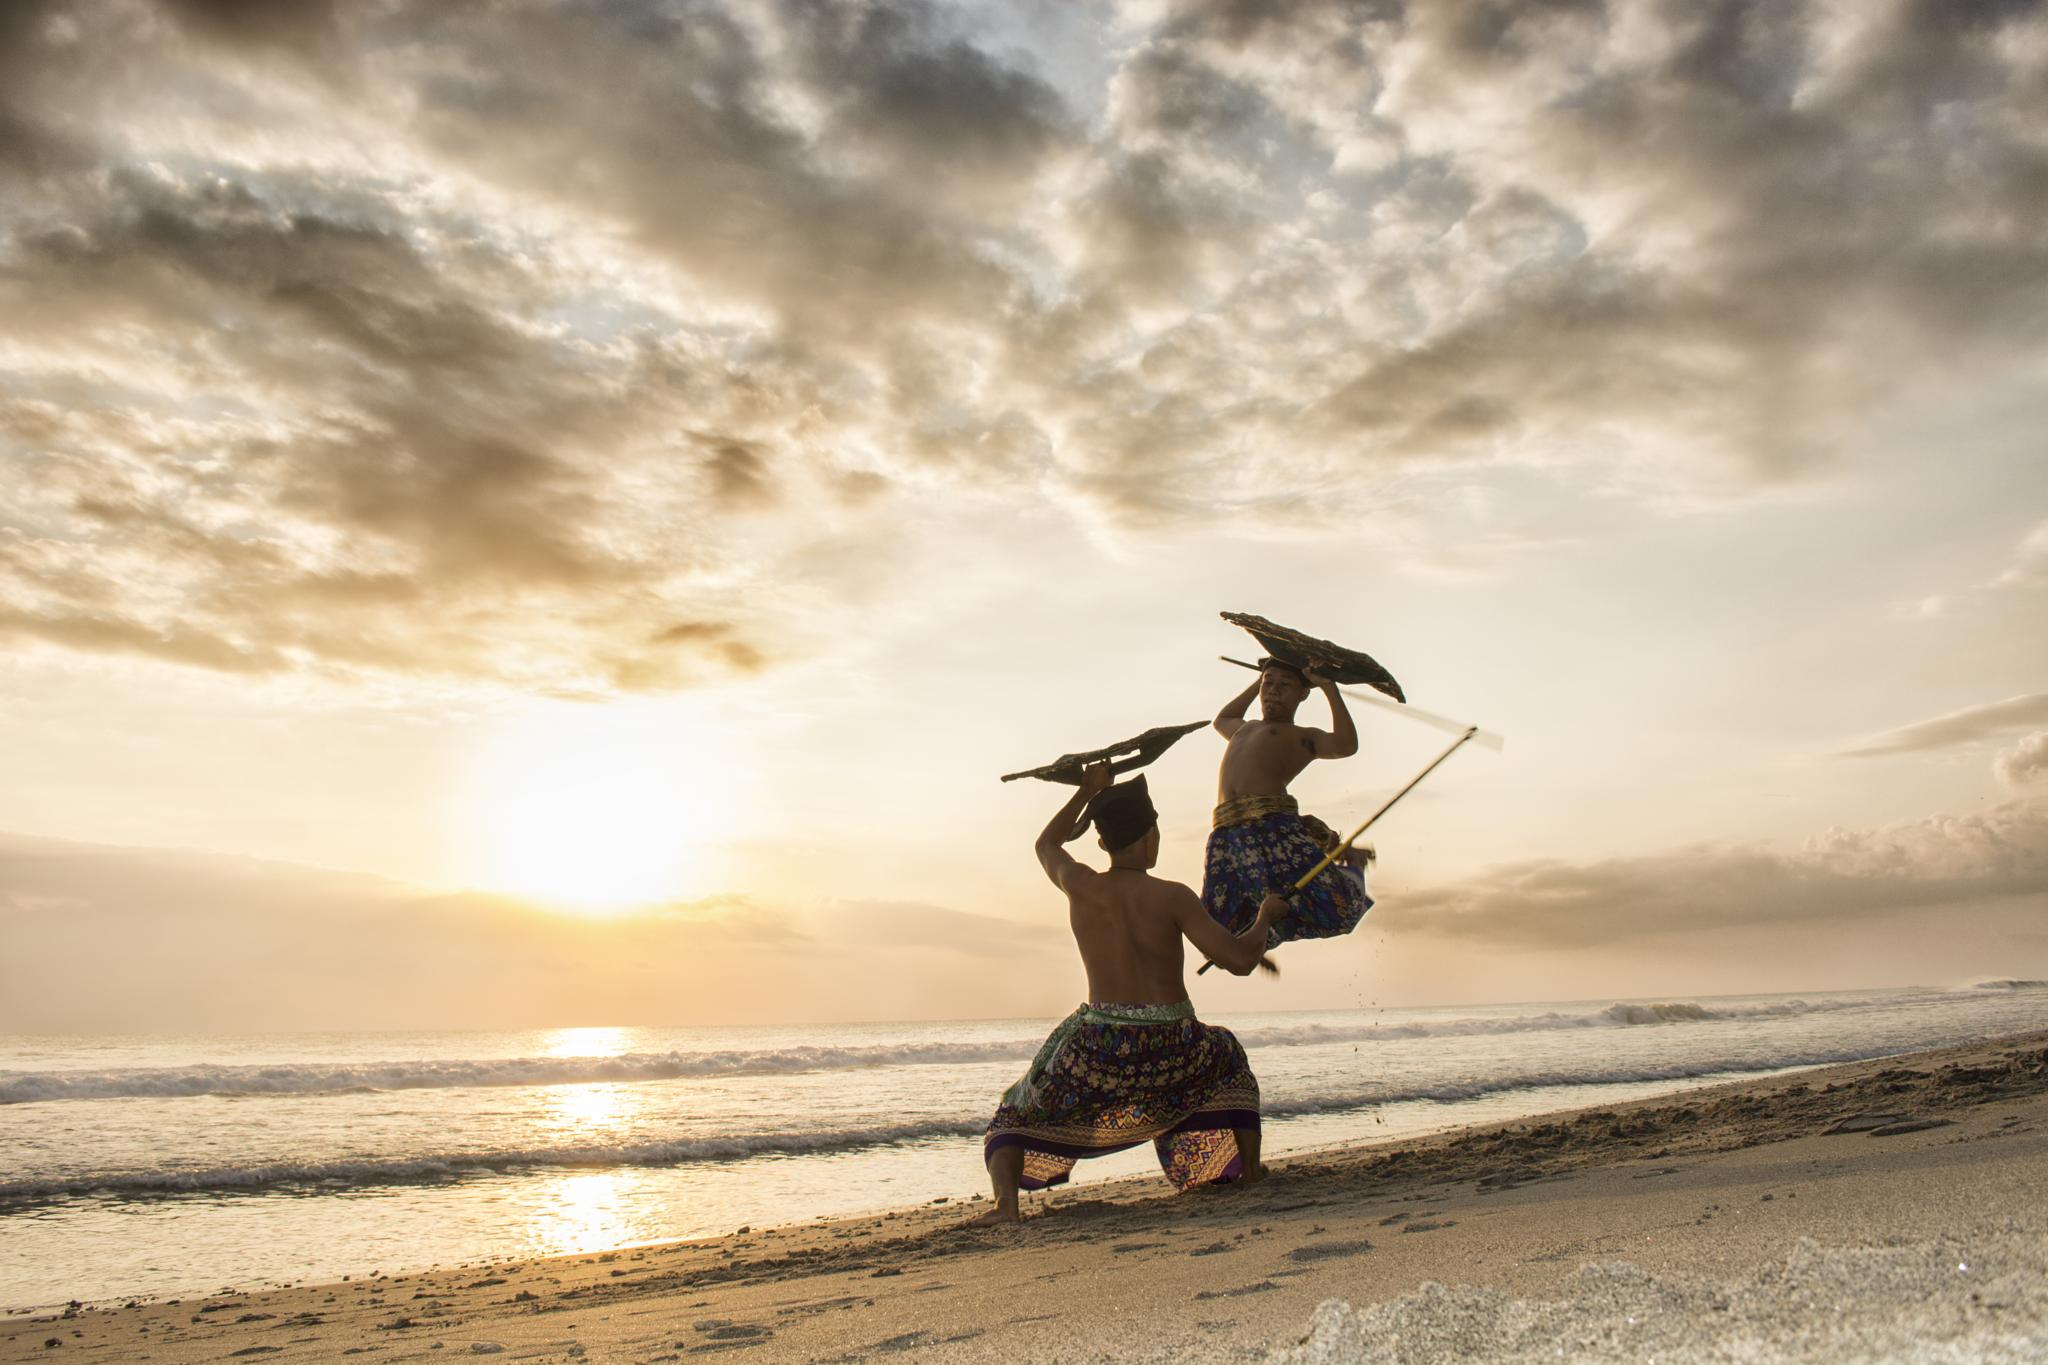 the perisaian - lombok traditional fighter by adhiewk